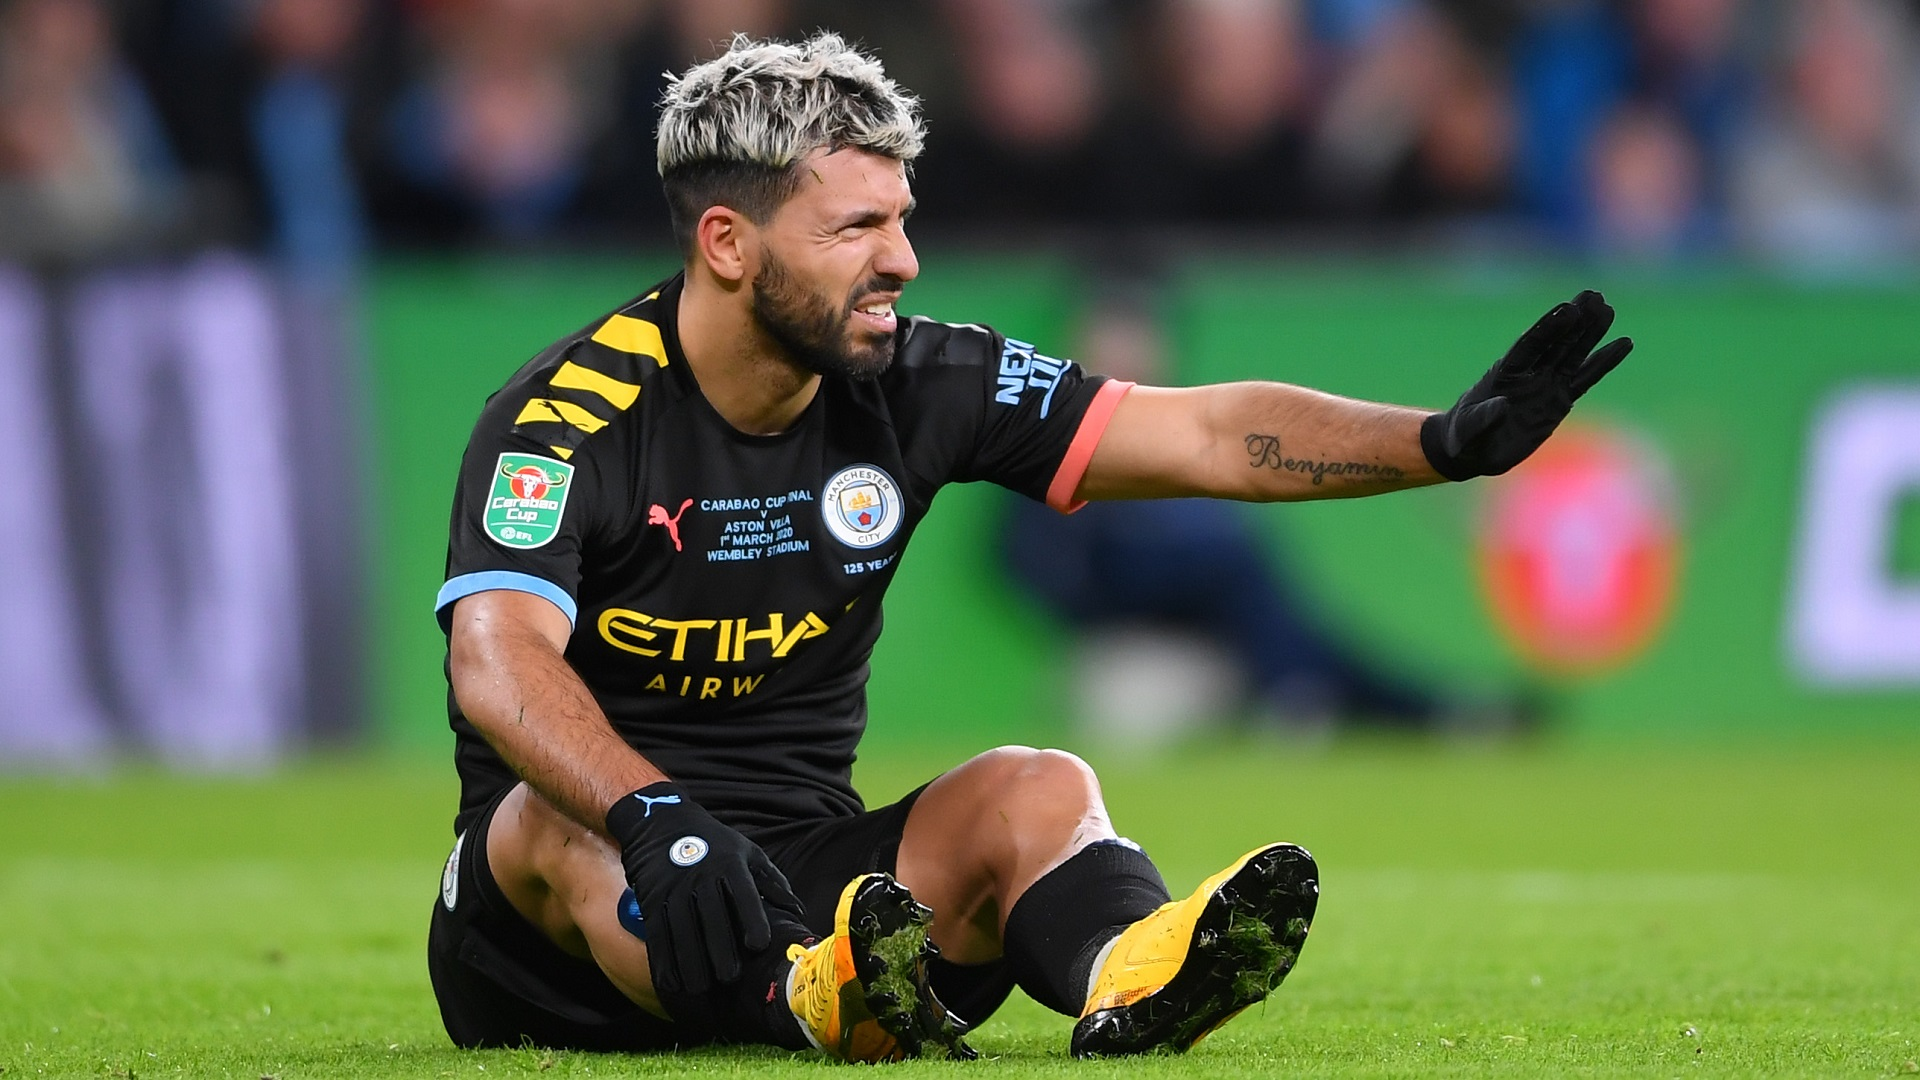 Aguero blow for Barcelona as striker ruled out for 10 weeks with calf injury